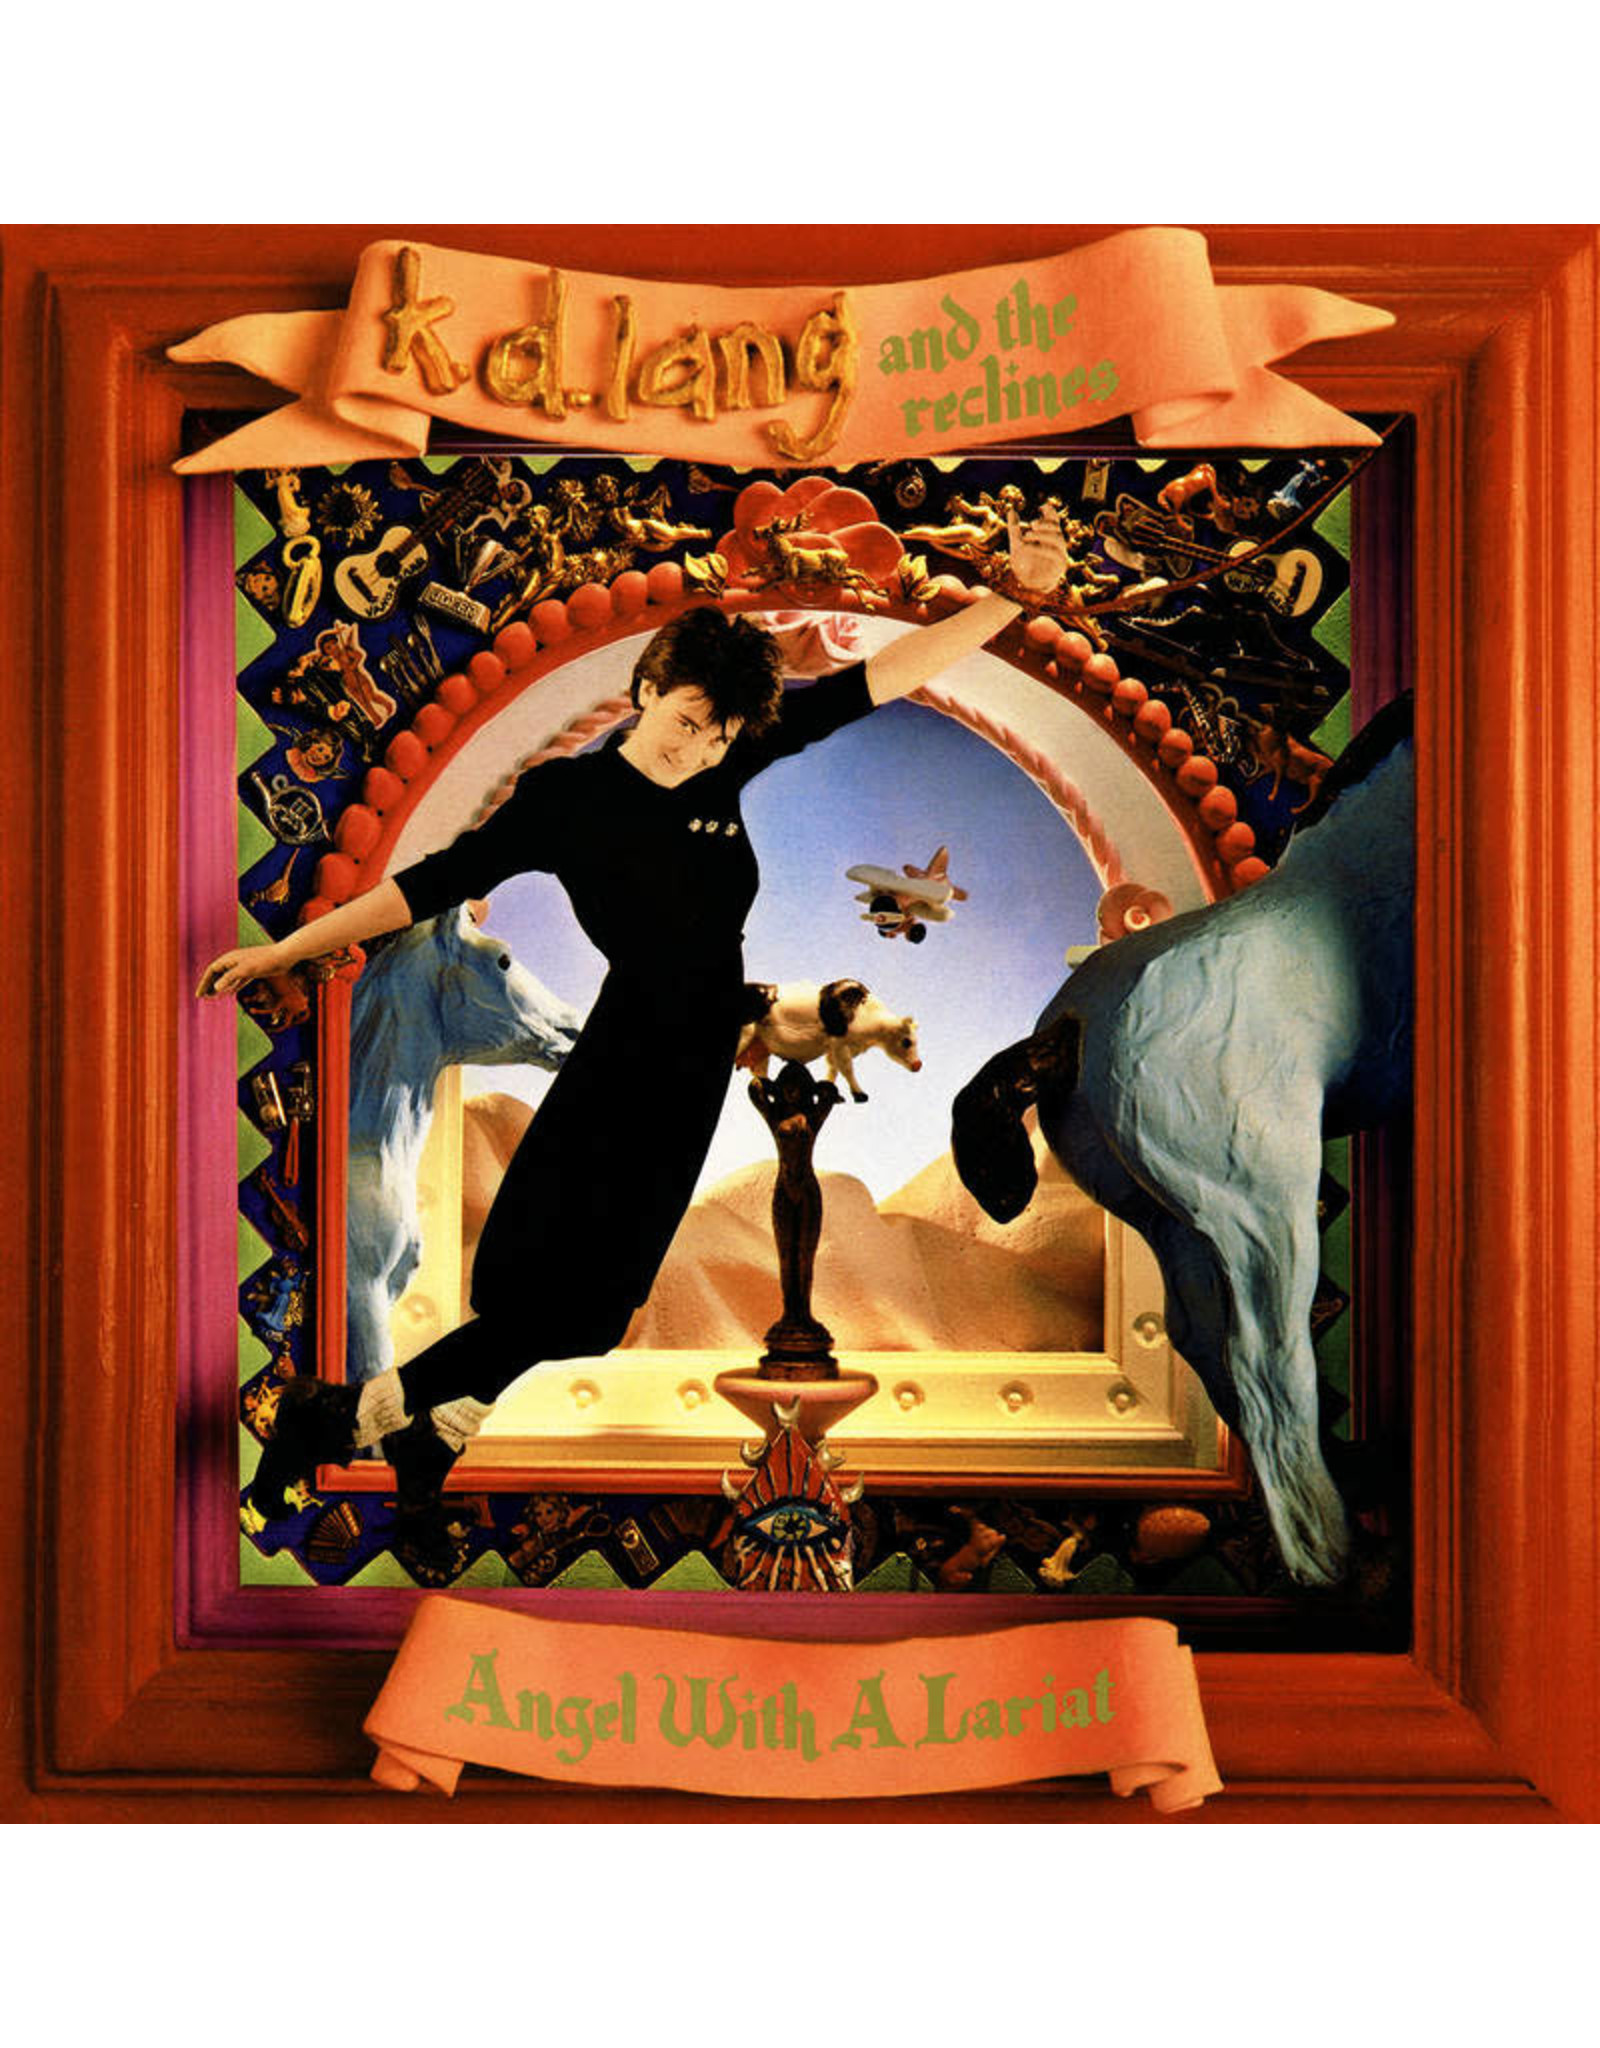 k.d. lang - Angel With A Lariat (Record Store Day) [Red Vinyl]